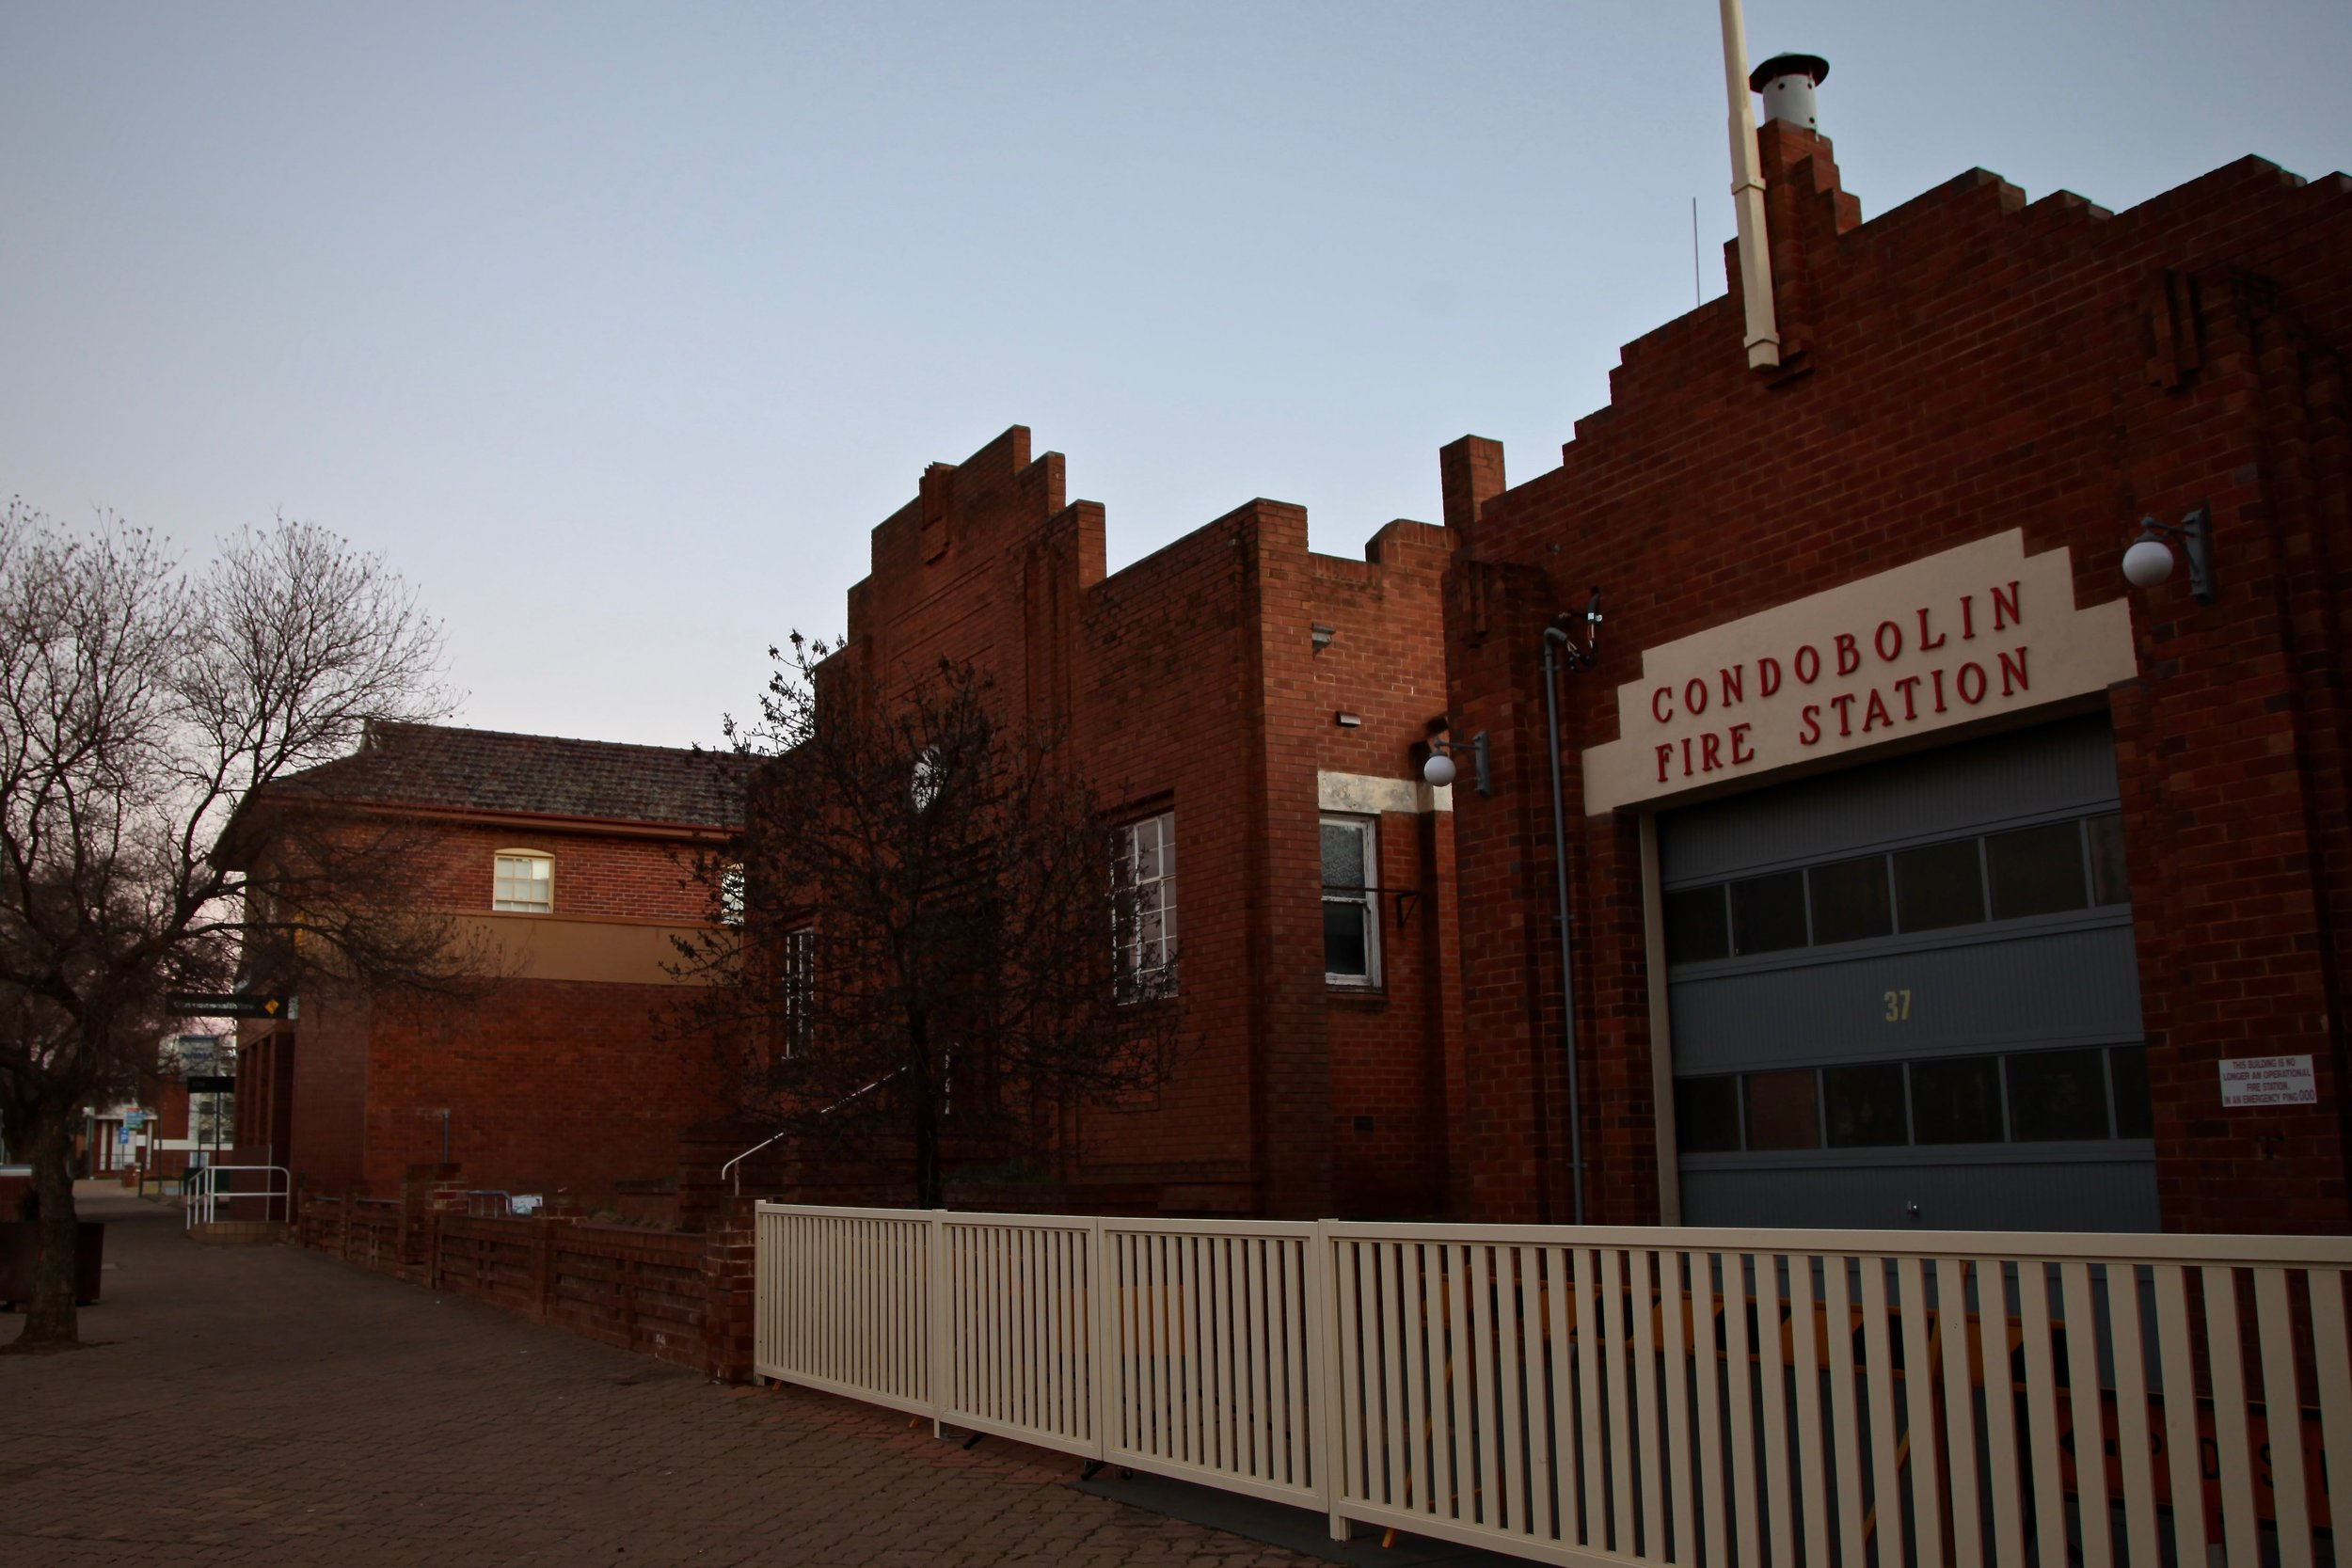 condobolin-fire-station.jpg